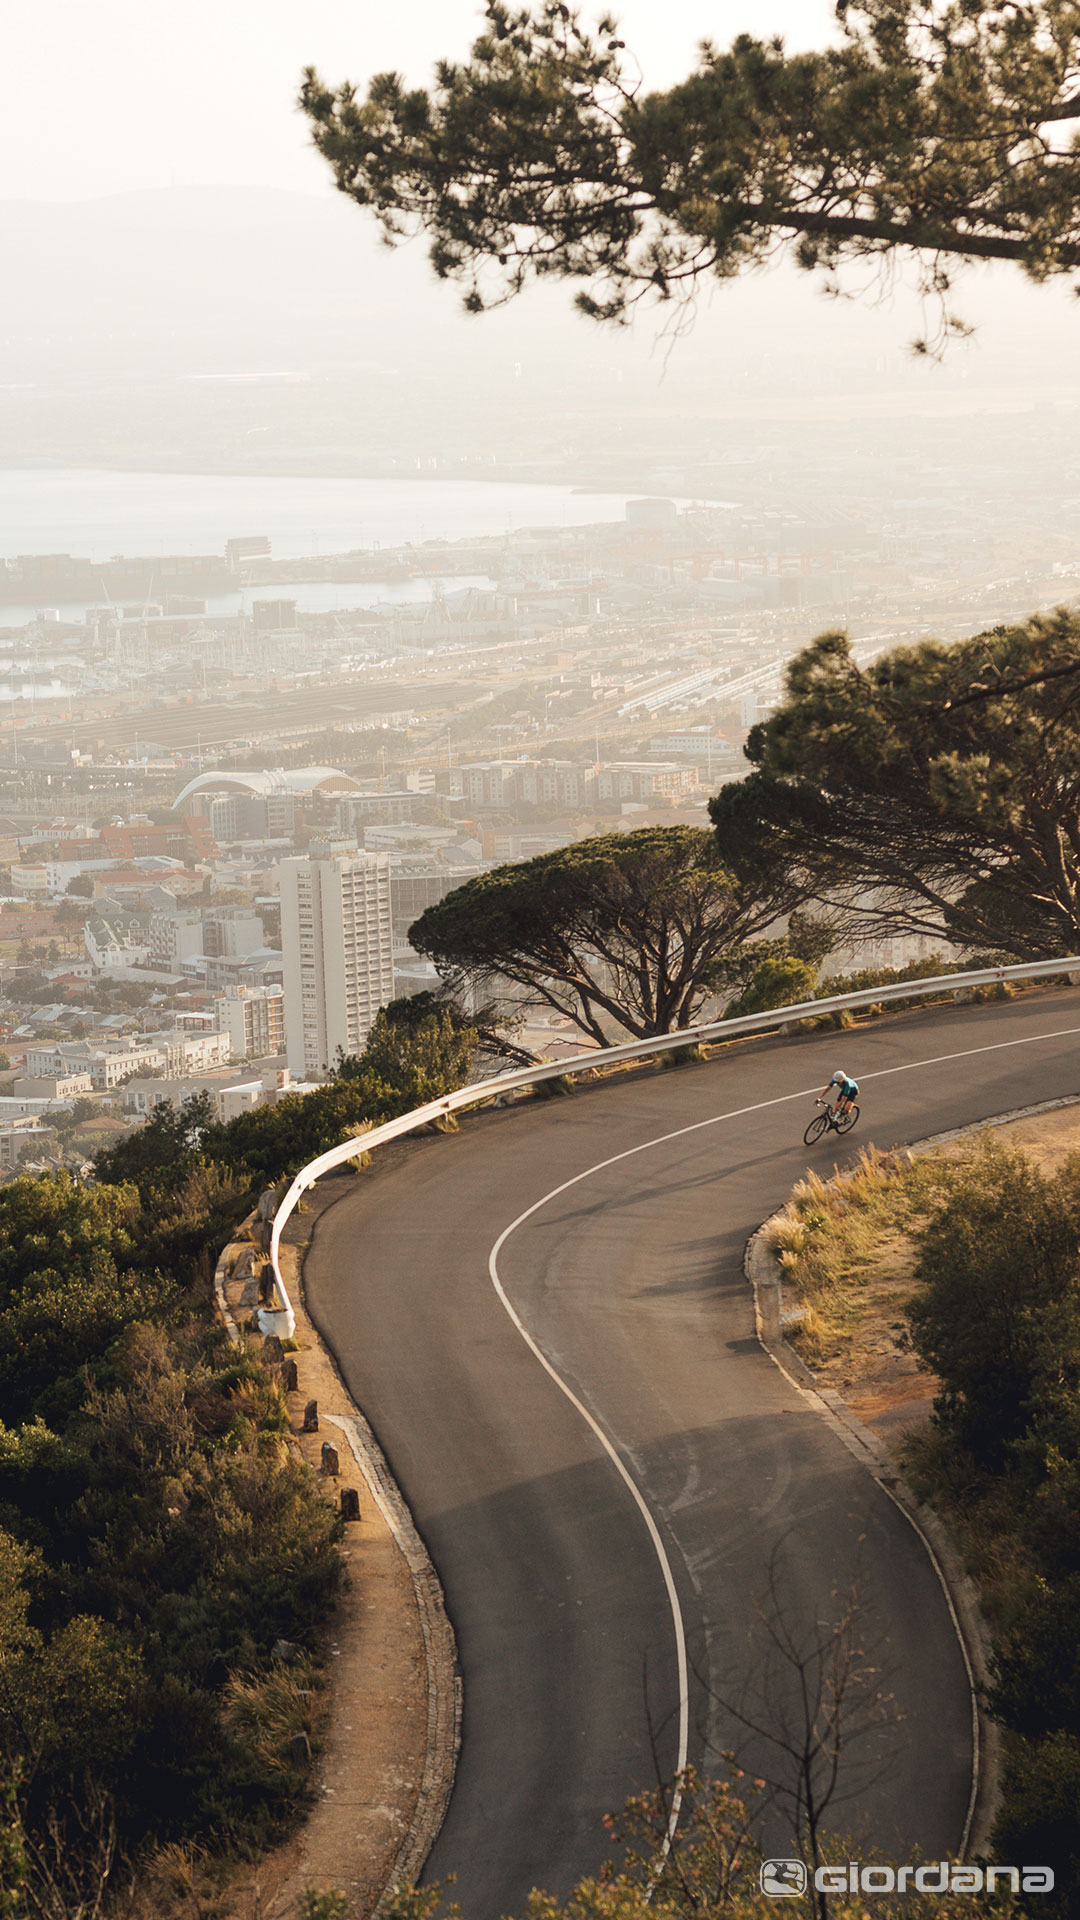 giordana-cycling-ss20-table-mountain-road-5